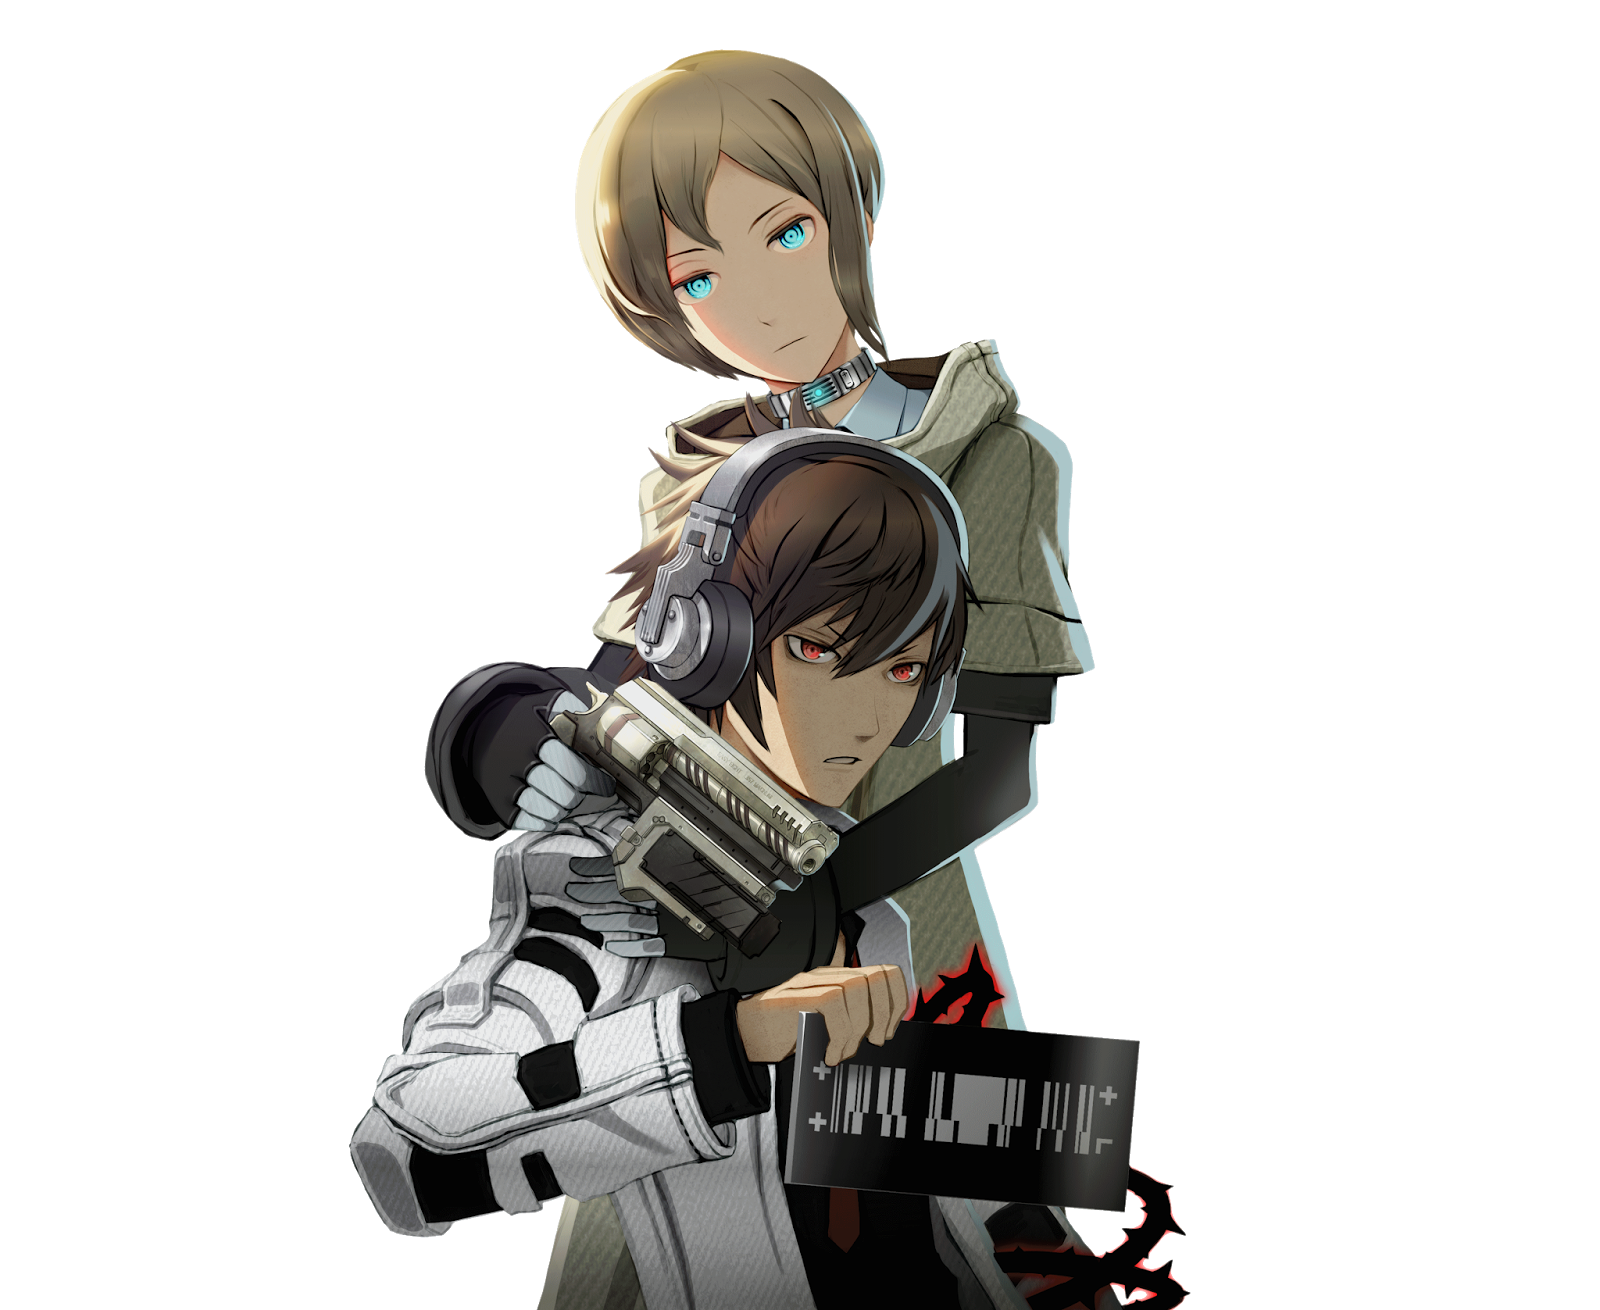 Freedom Wars ps Vita Freedom Wars For ps Vita Was